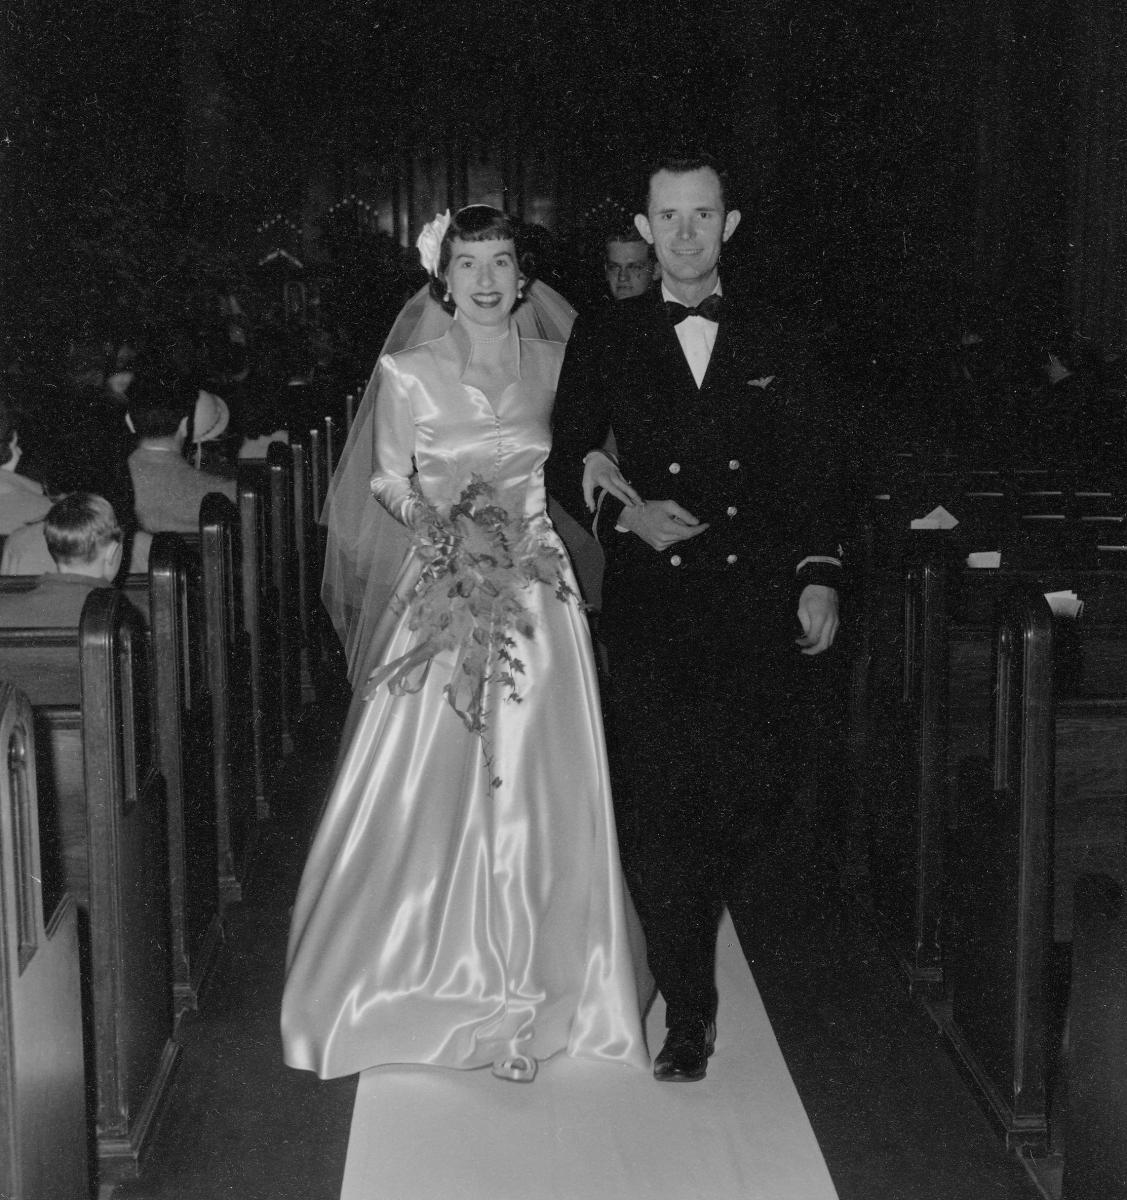 Harley and Althea Wilbur - their Wedding                2 February 1951